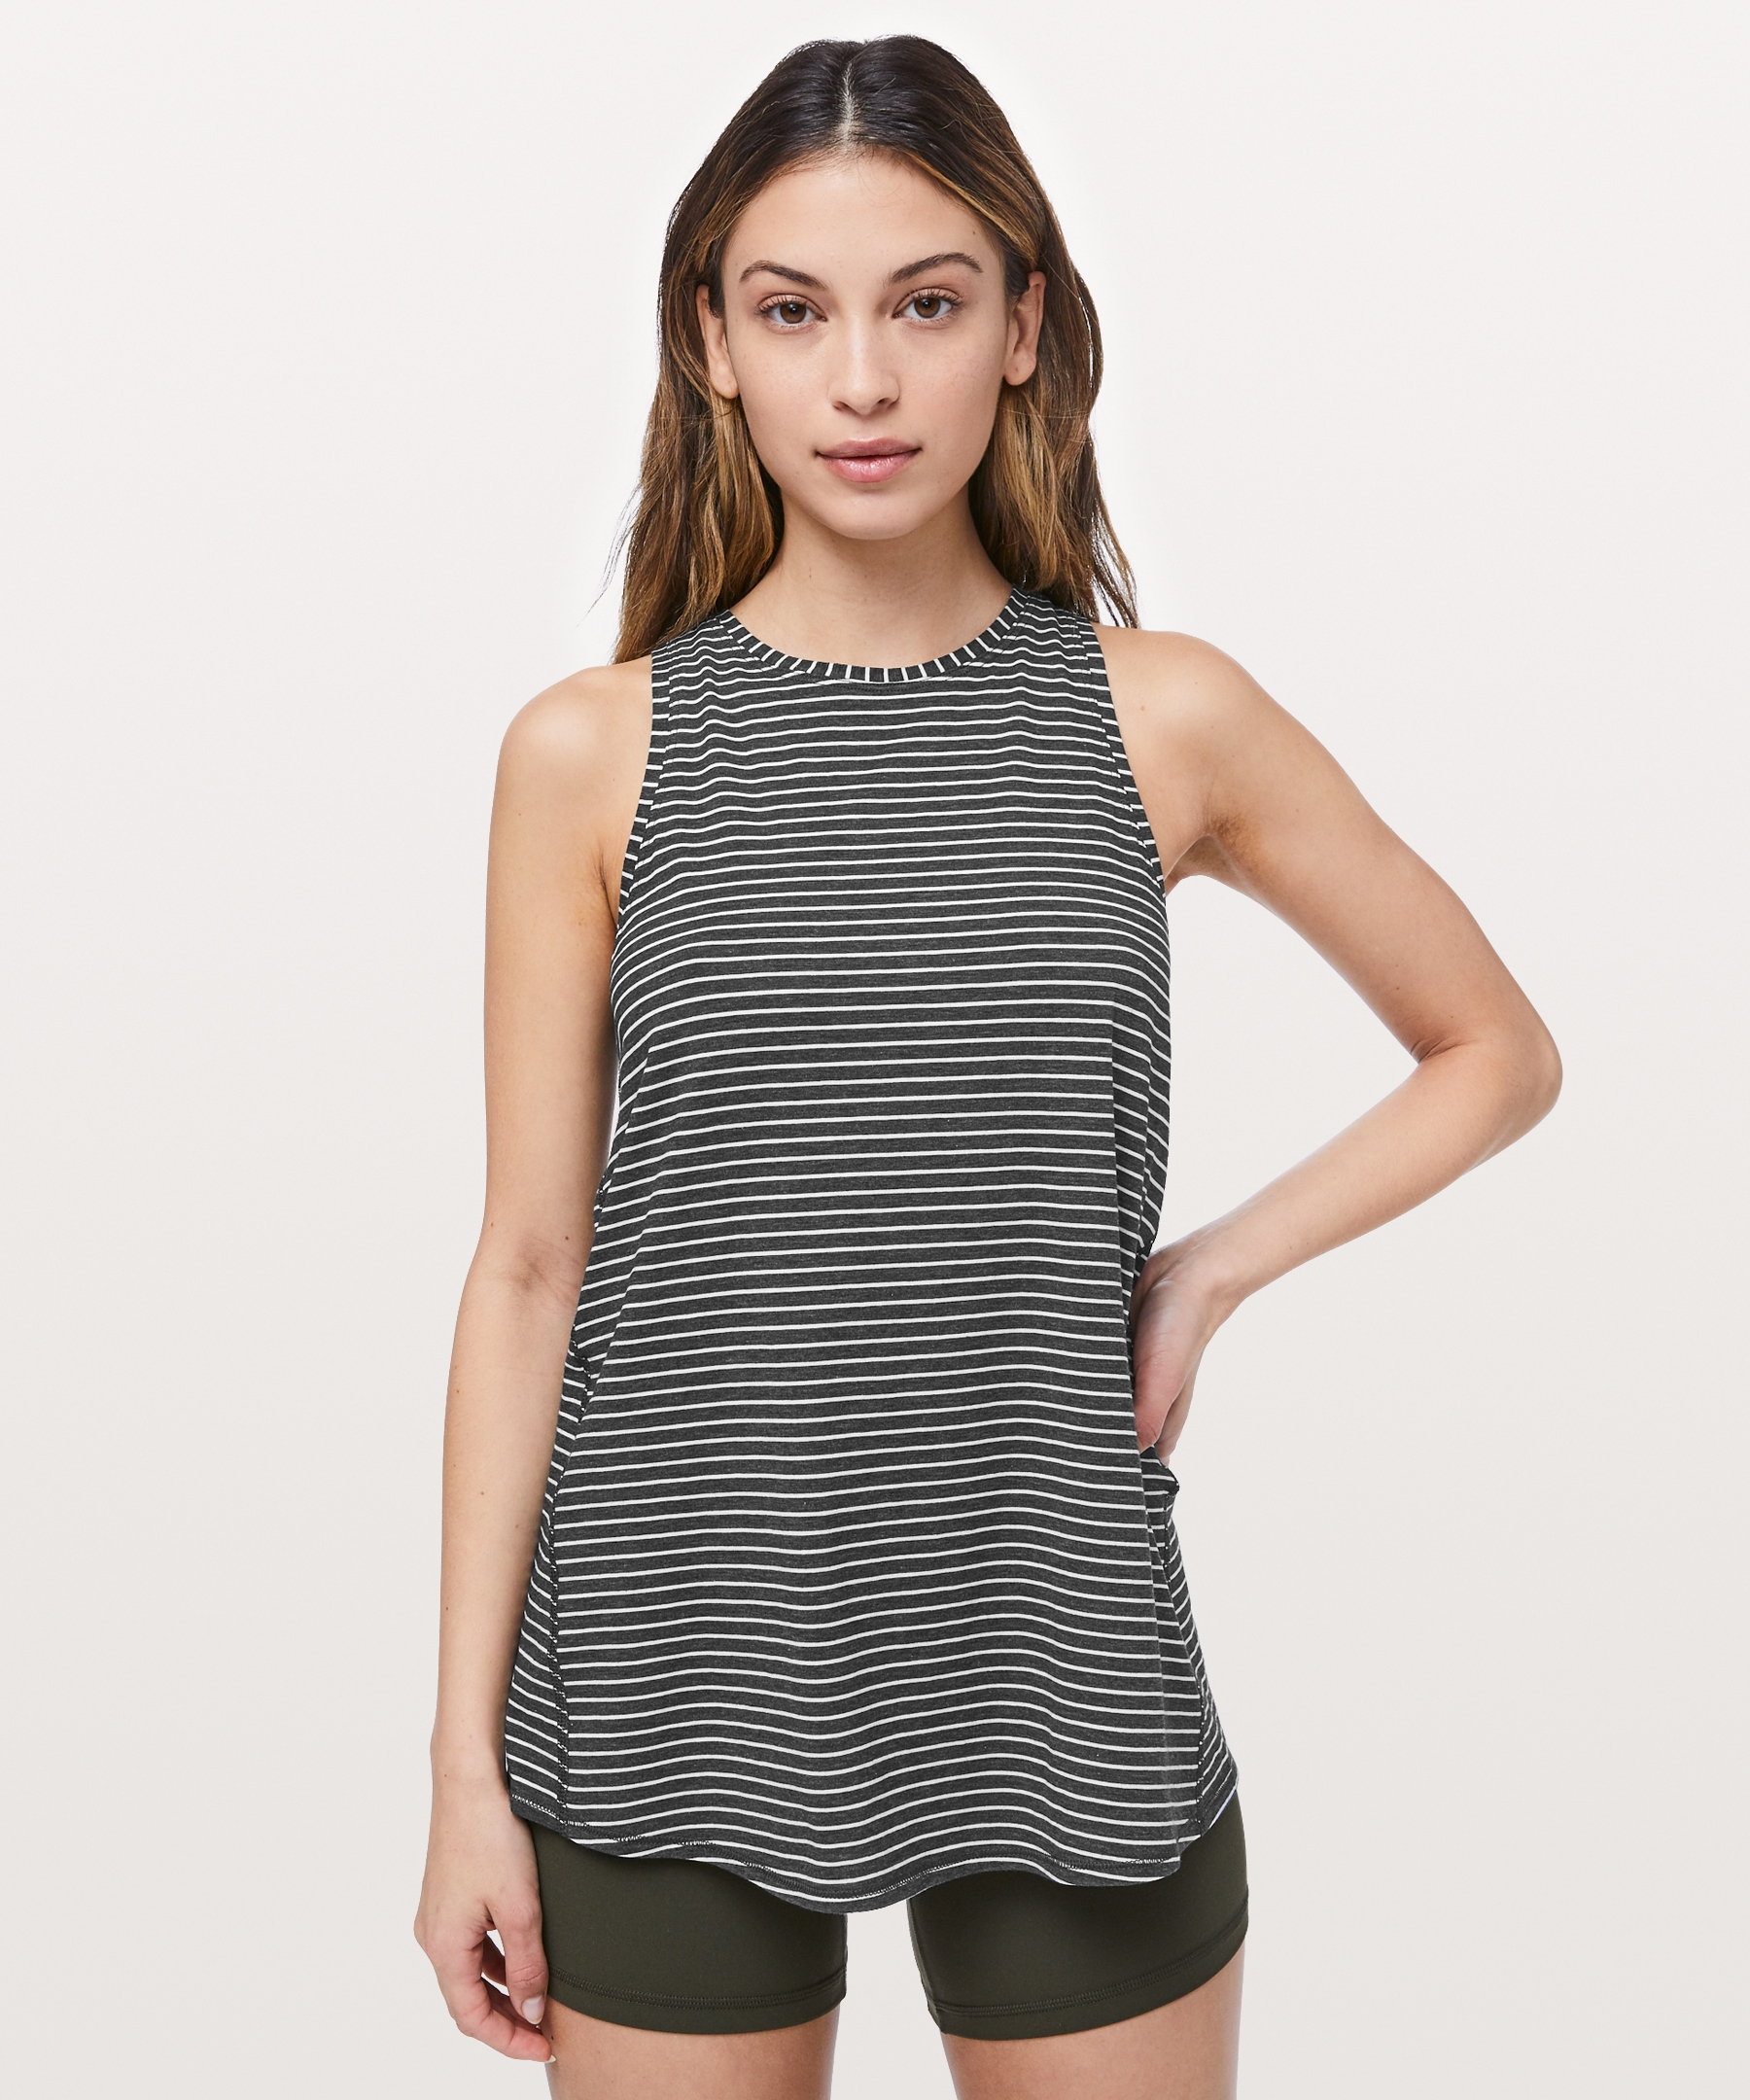 40a0850f98 All Tied Up Tank - Wear this tank two ways: layer it on long and loose or tie  up the back to secure in place during yoga class.